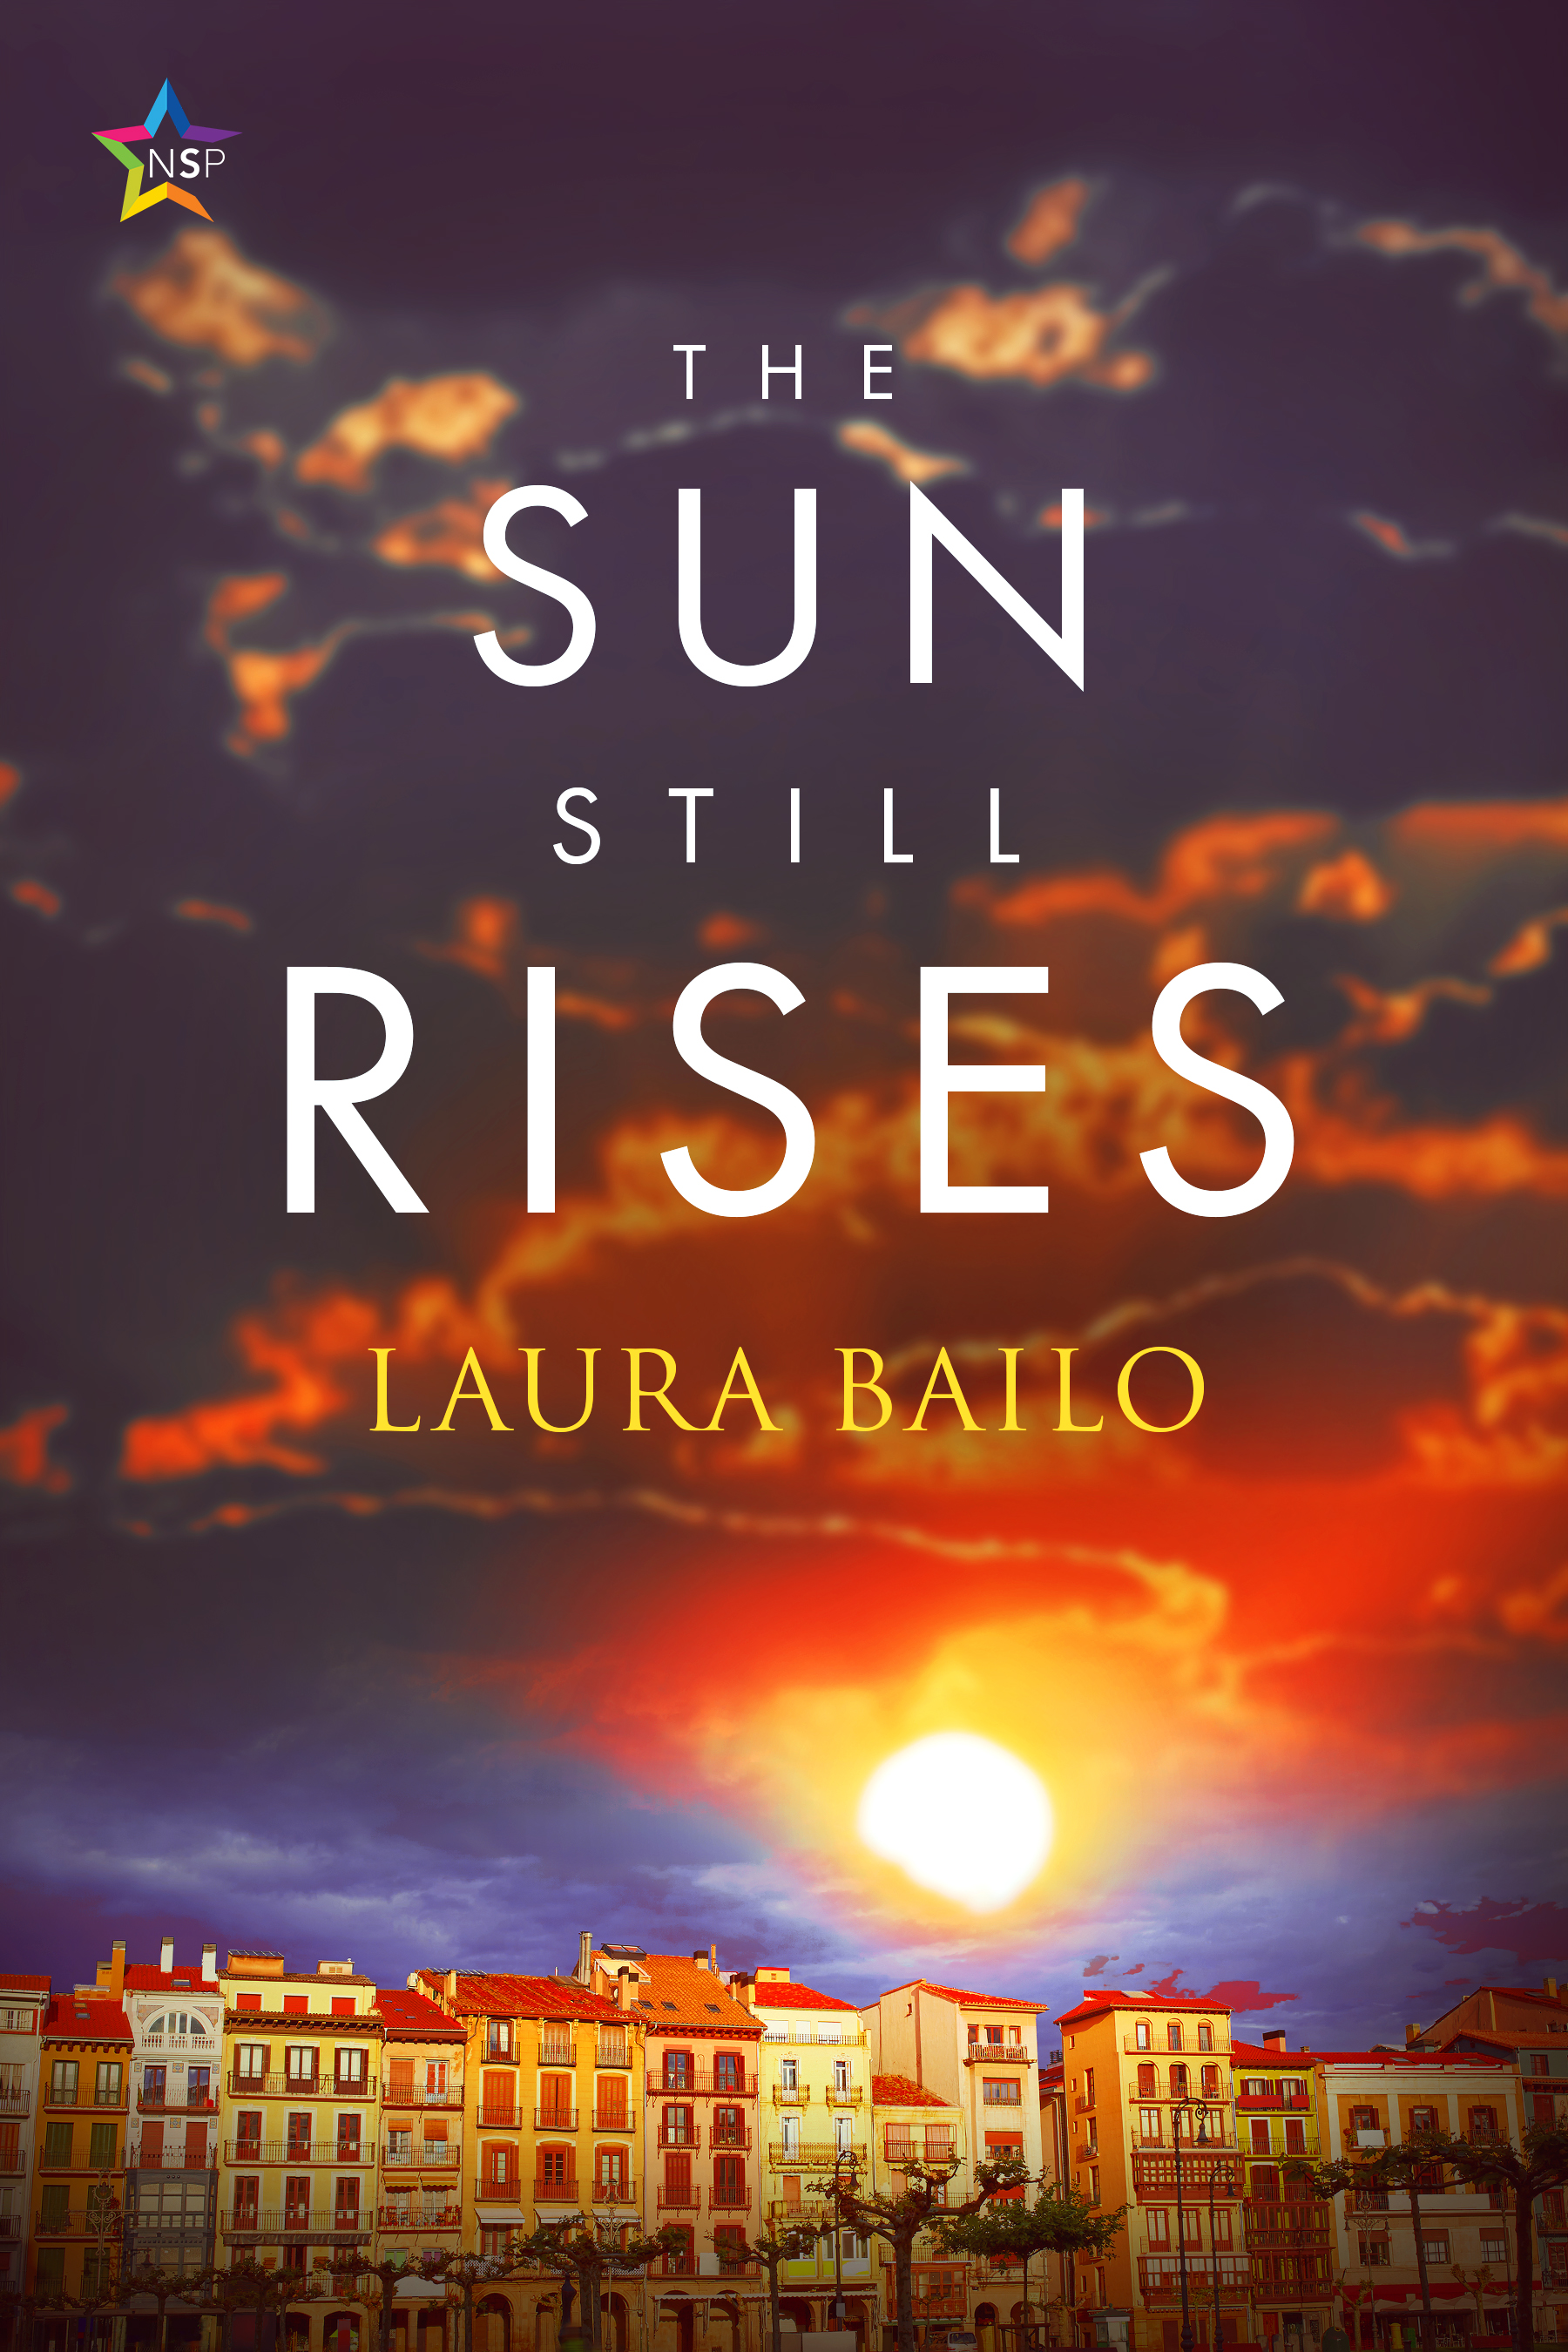 Guest Post: The Sun Still Rises by Laura Bailo